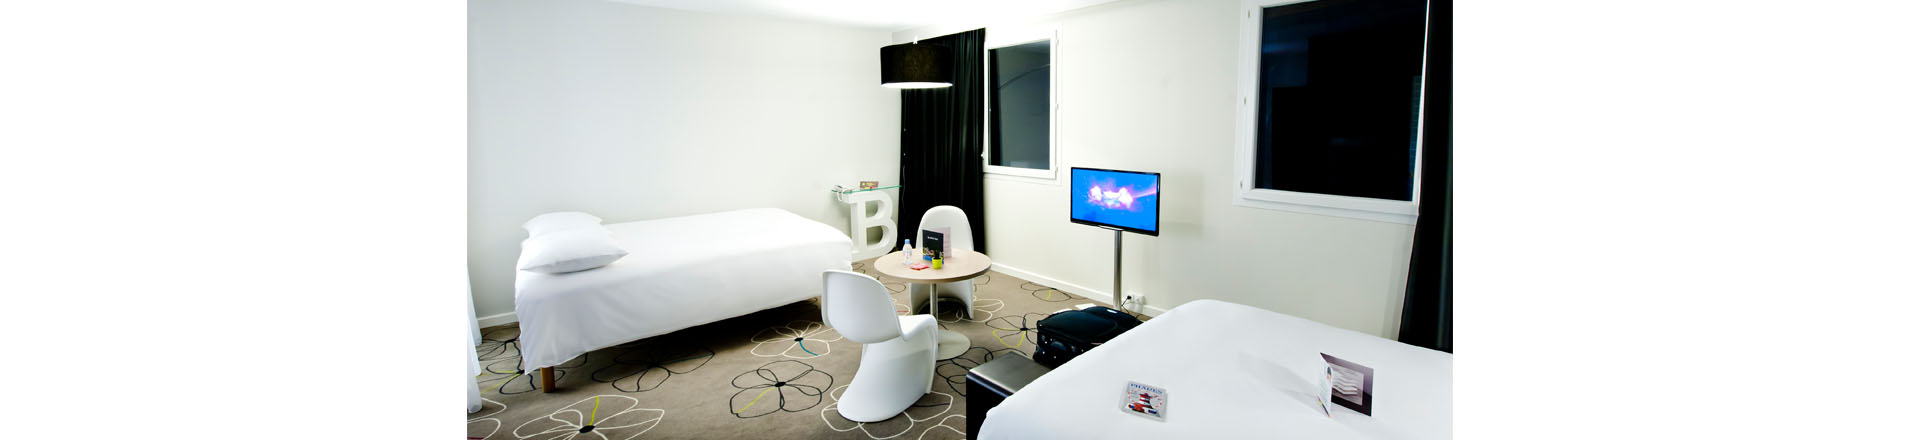 Hotel chambre double 2 lits brest